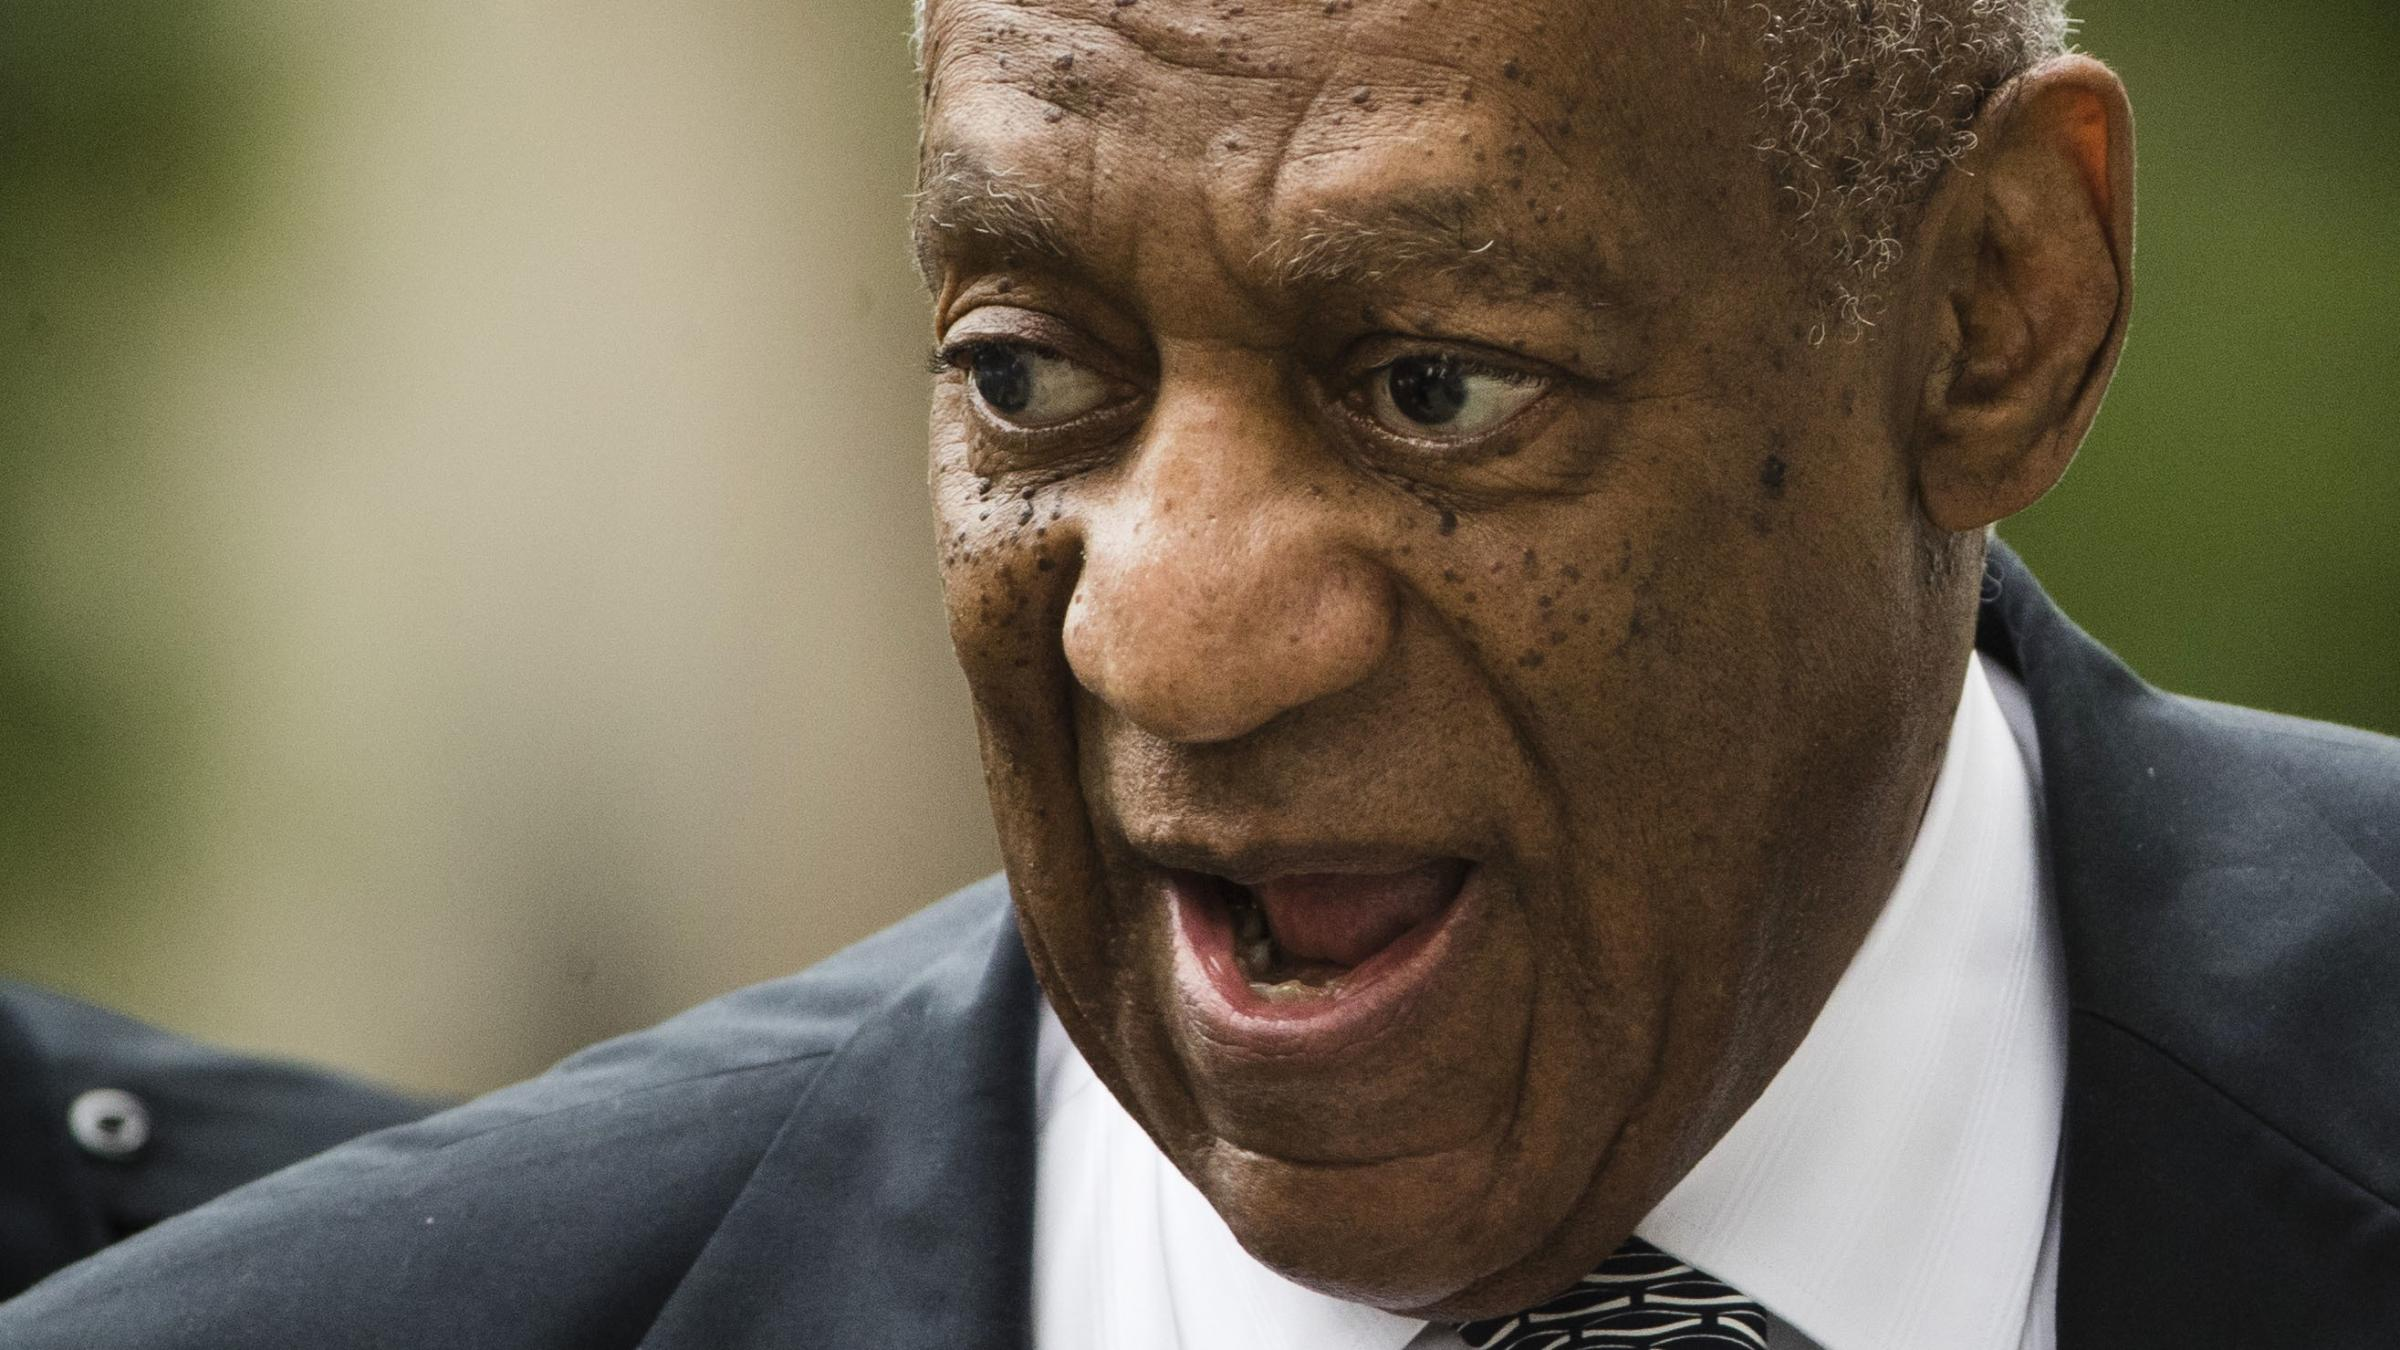 Judge orders Cosby jury to keep deliberating